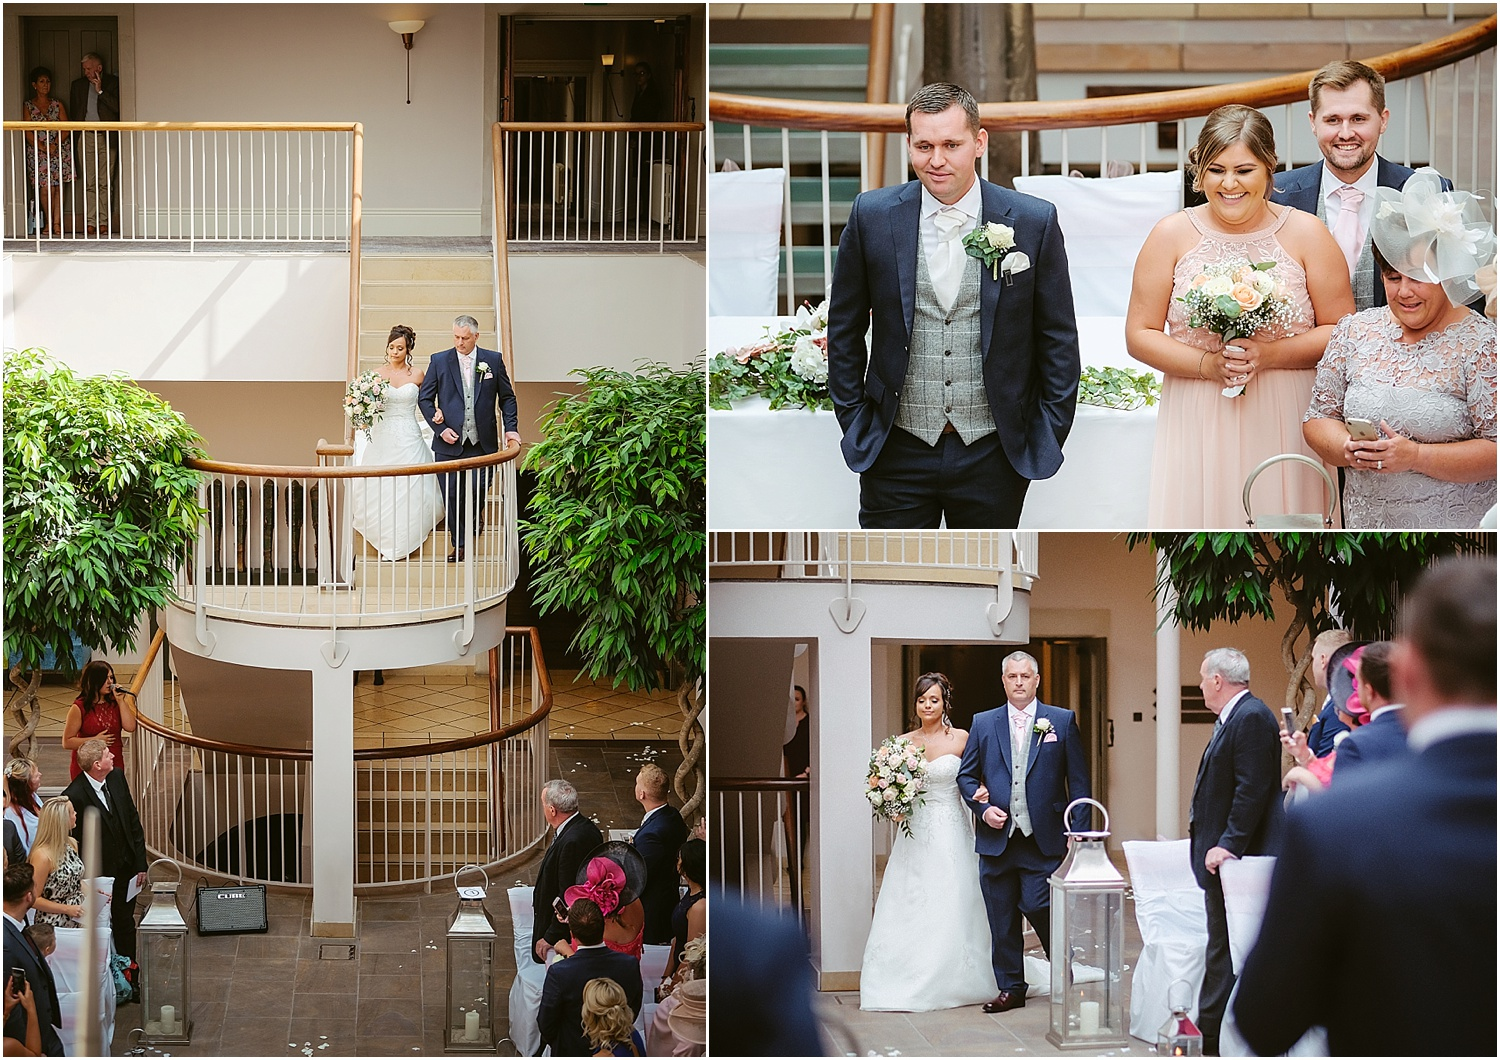 Wedding at Seaham Hall - wedding photography by www.2tonephotography.co.uk 029.jpg